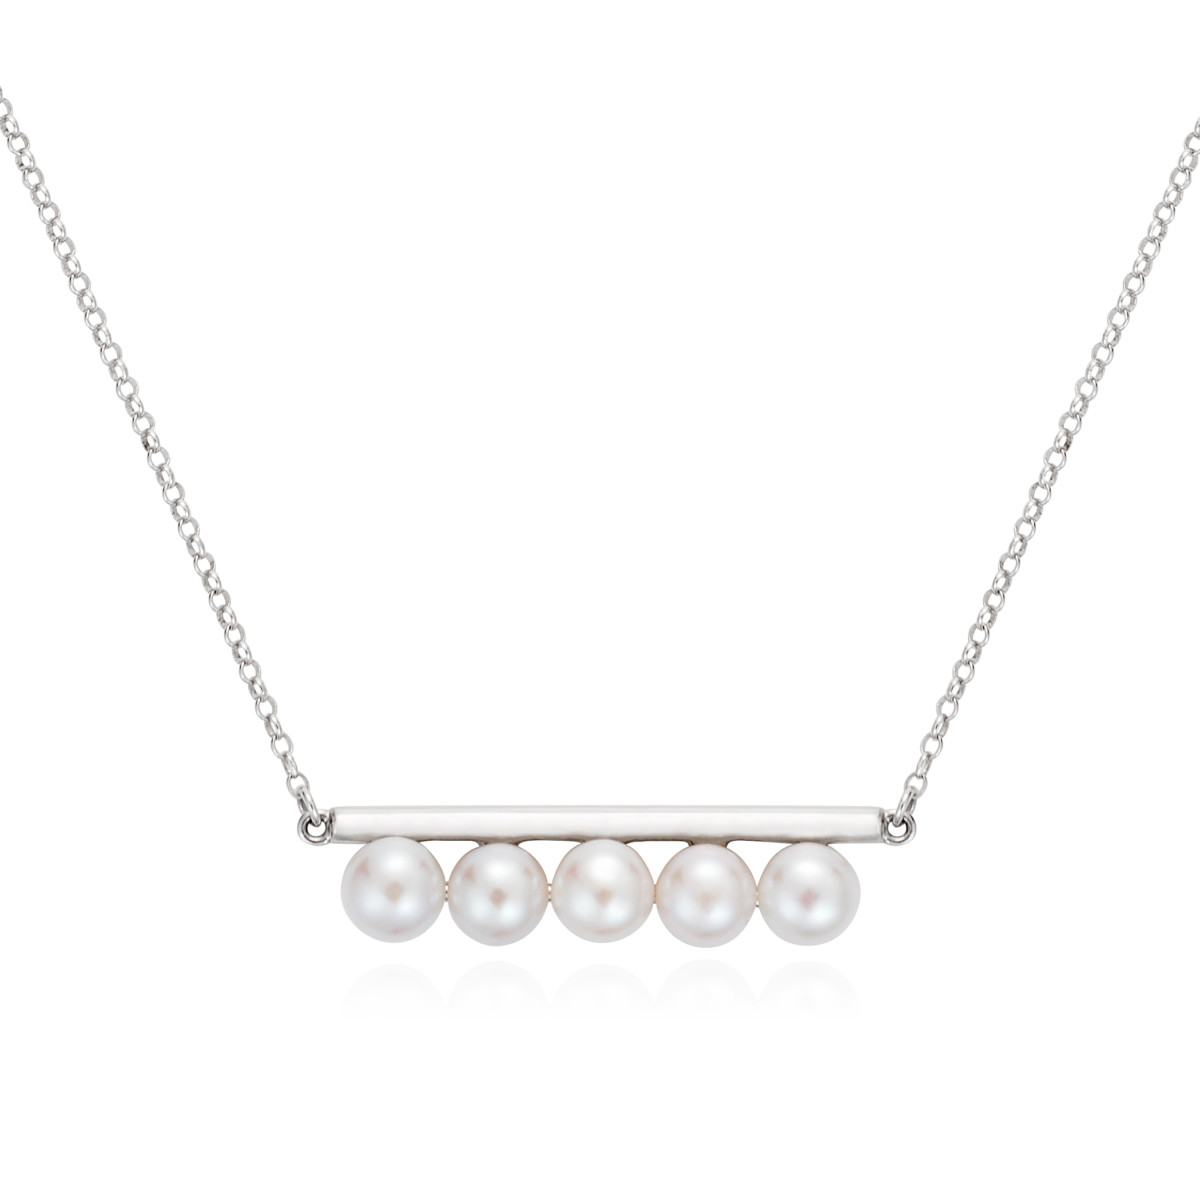 claudia-bradby_pearl-bar-necklace-crop